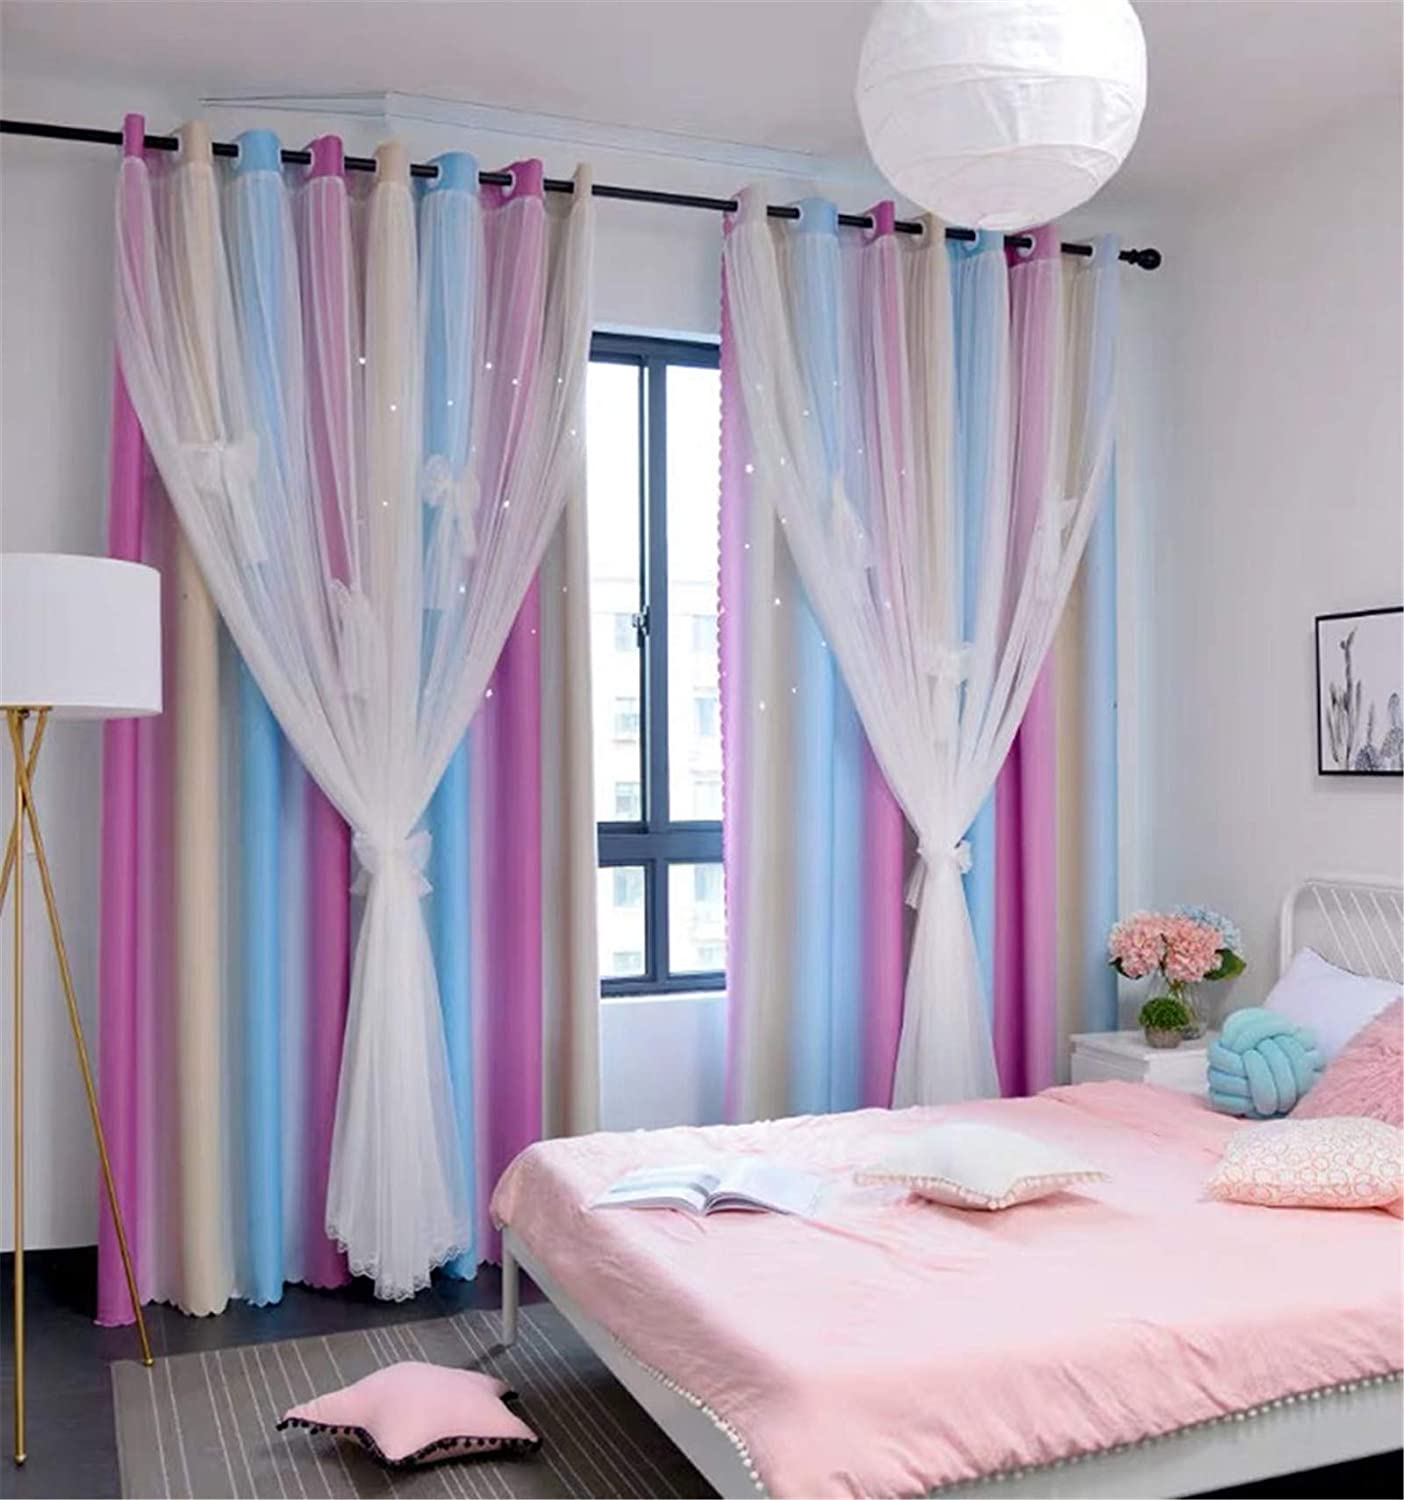 Room Darkening Blackout Star Kids Curtains 63 inches Long Lace Drapes 2 Layers Window Panels Bedroom Living Room Divider (Pink Blue, W52 X L63)